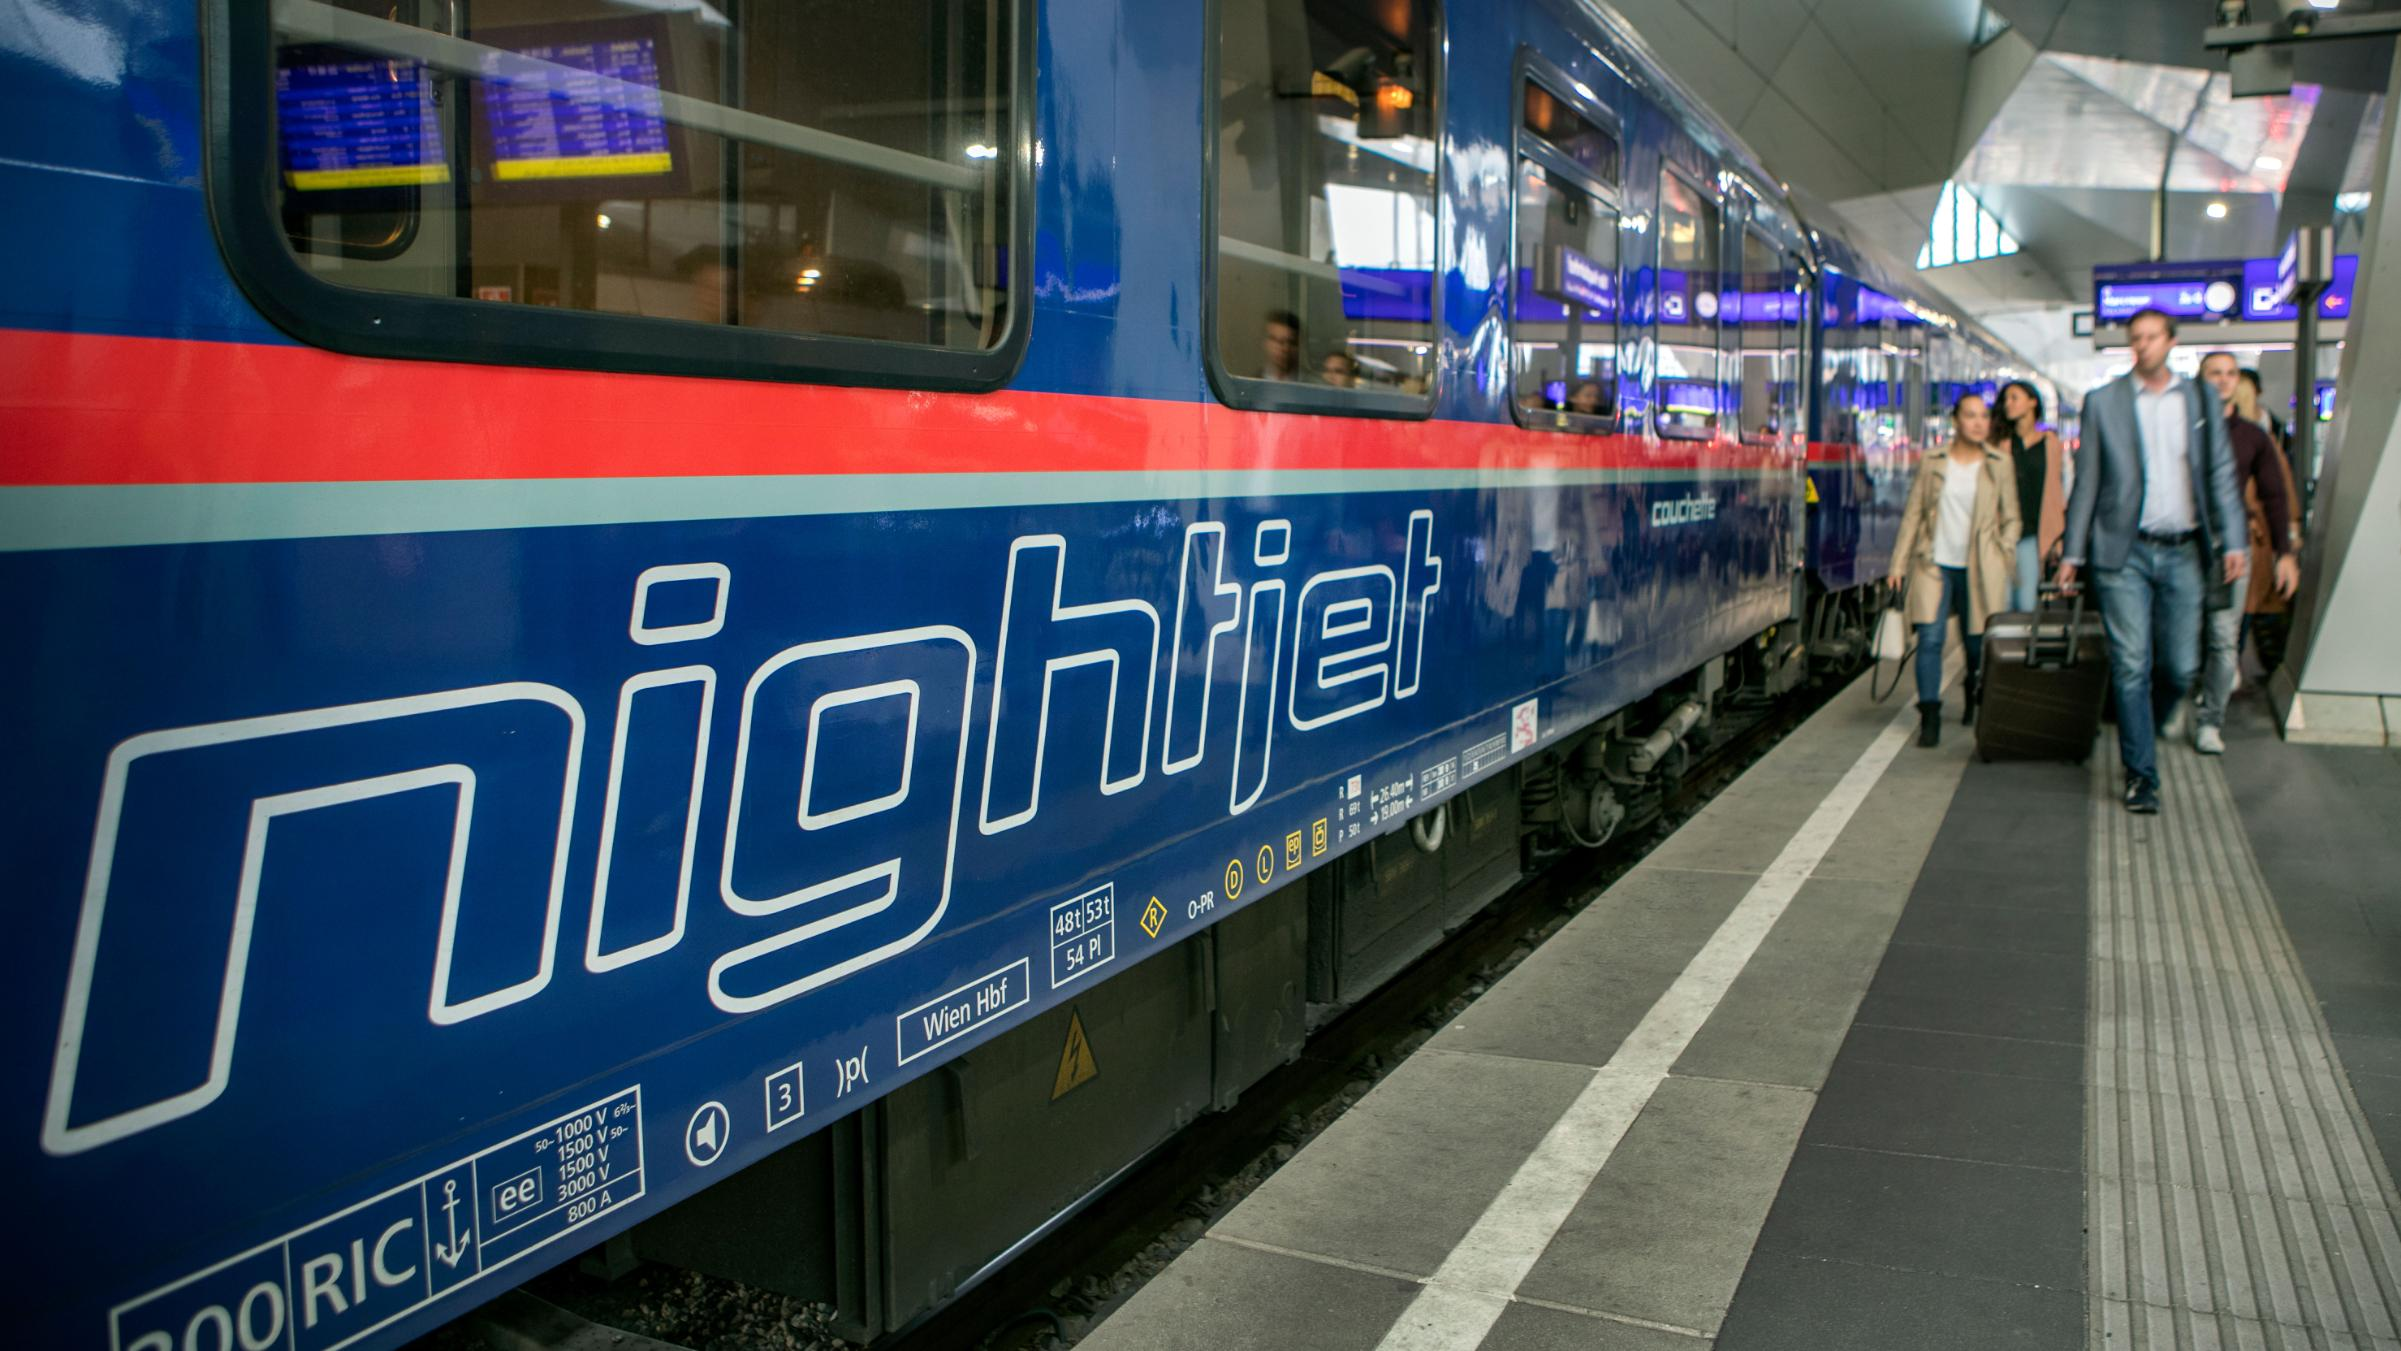 Sleeper trains in Europe: Here are the best | CNN Travel